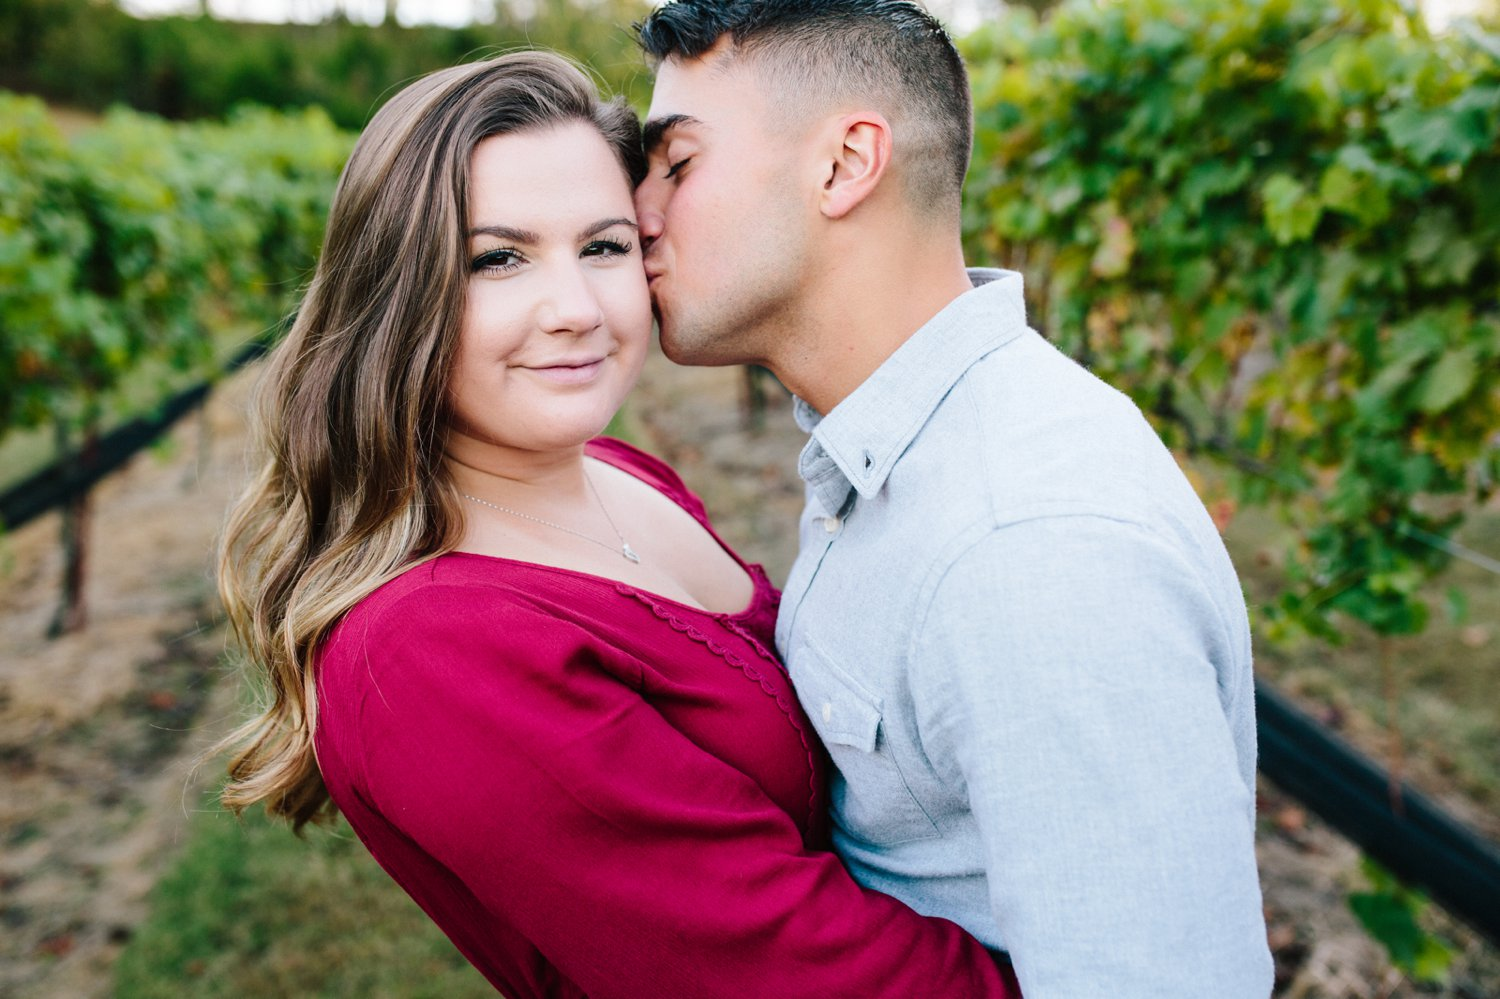 CSP-Lexie-Dan-Engagement-074.jpg